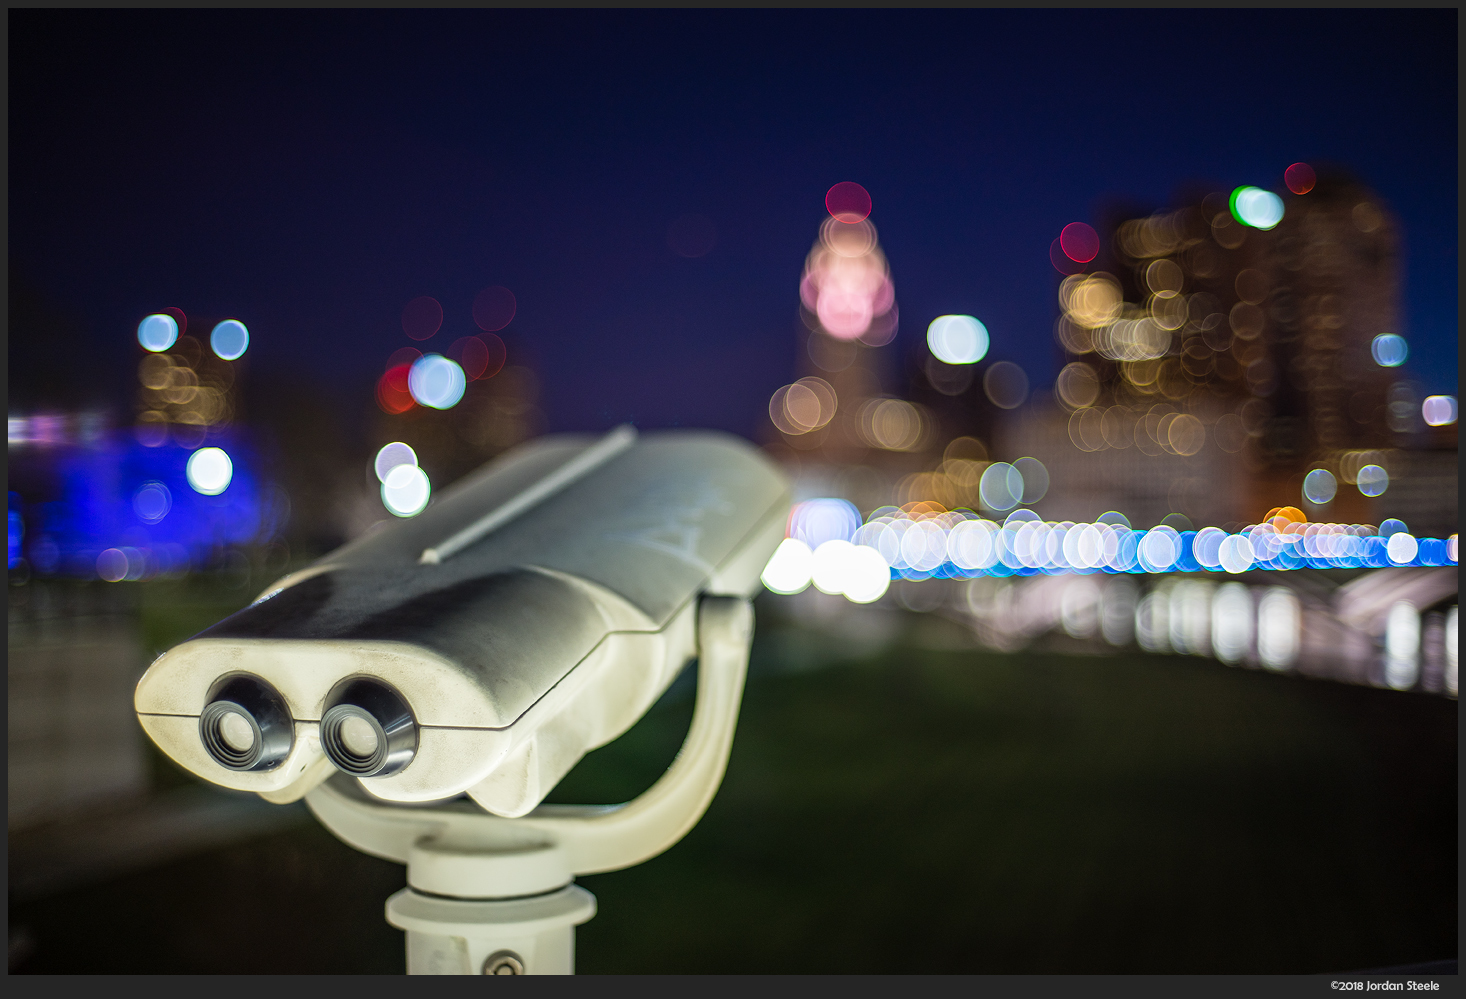 Telescope of the City - Sony A7 II with Voigtländer 35mm f/1.4 Nokton Classic @ f/1.4,